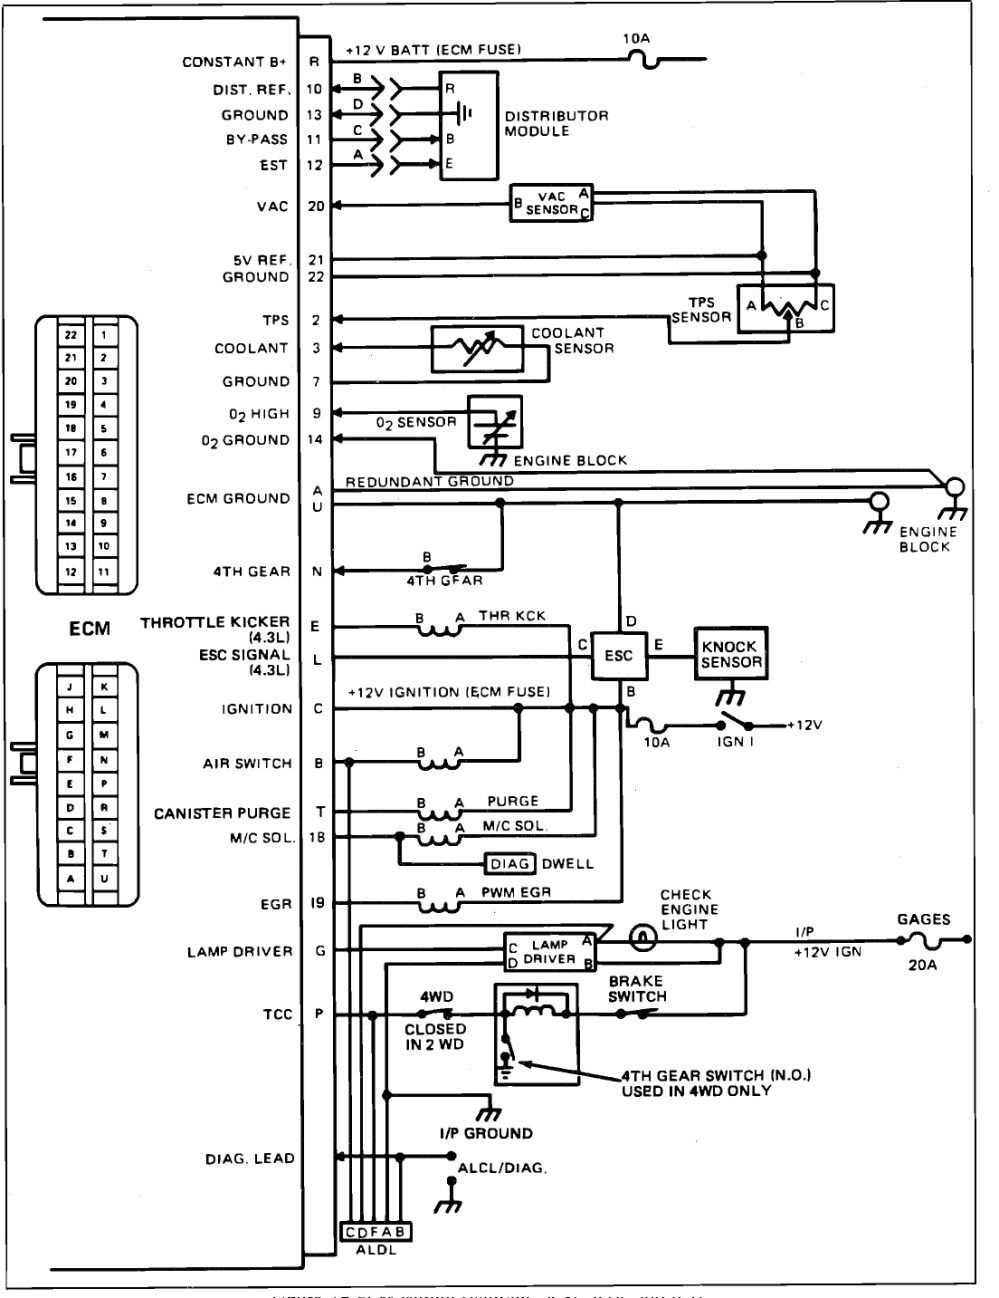 medium resolution of 1989 chevy ac control wiring diagram wiring diagram blog 1989 chevy c3500 wiring diagram